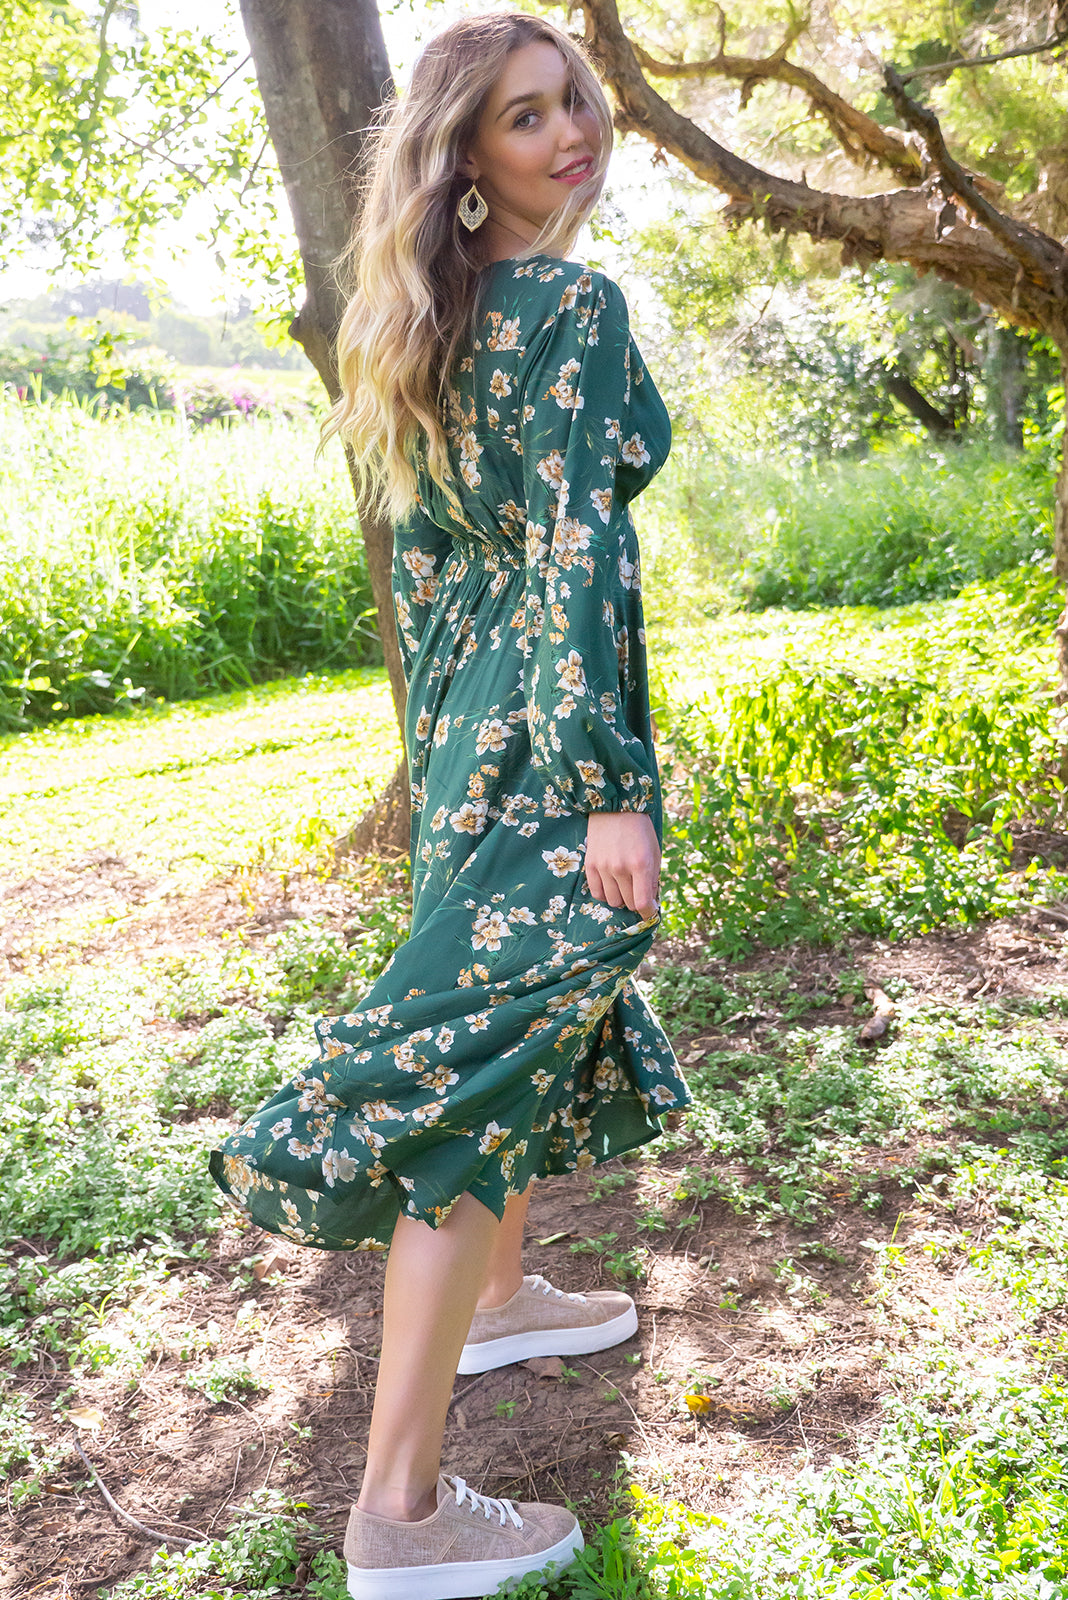 Mayfair Green Iris Maxi dress features a vintage inspired empire line basque with elastic across the back, a full long sleeve with an elasticated cuff, a deep v neck the fabric is made from a soft woven rayon in a soft green floral print